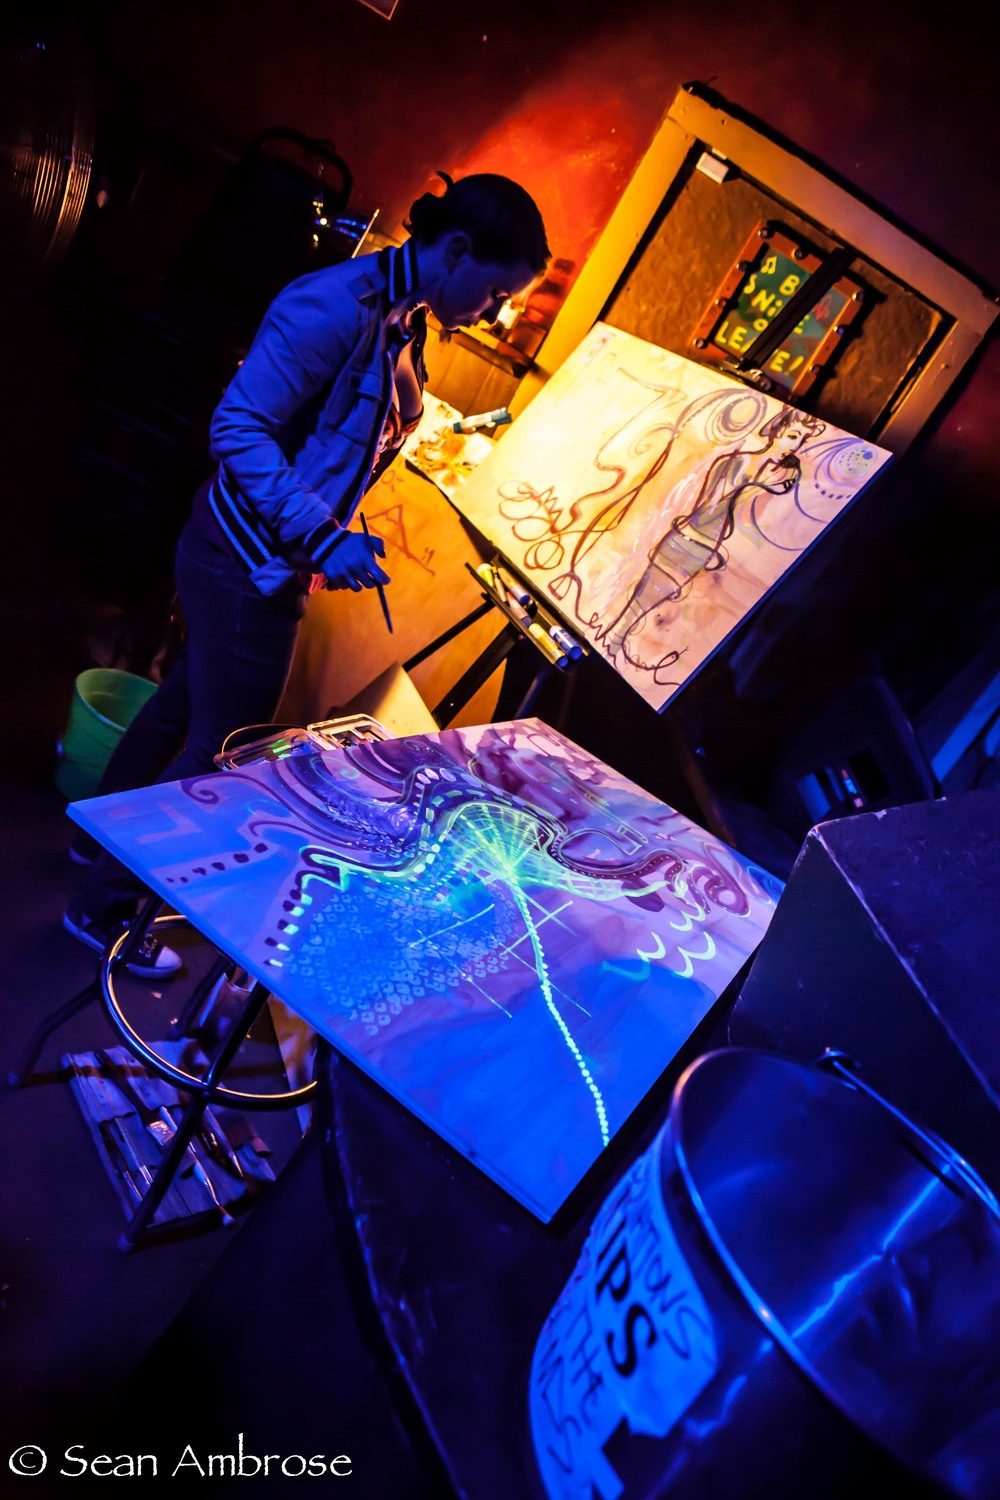 Monica Kelly live painting at LIVE JUJU